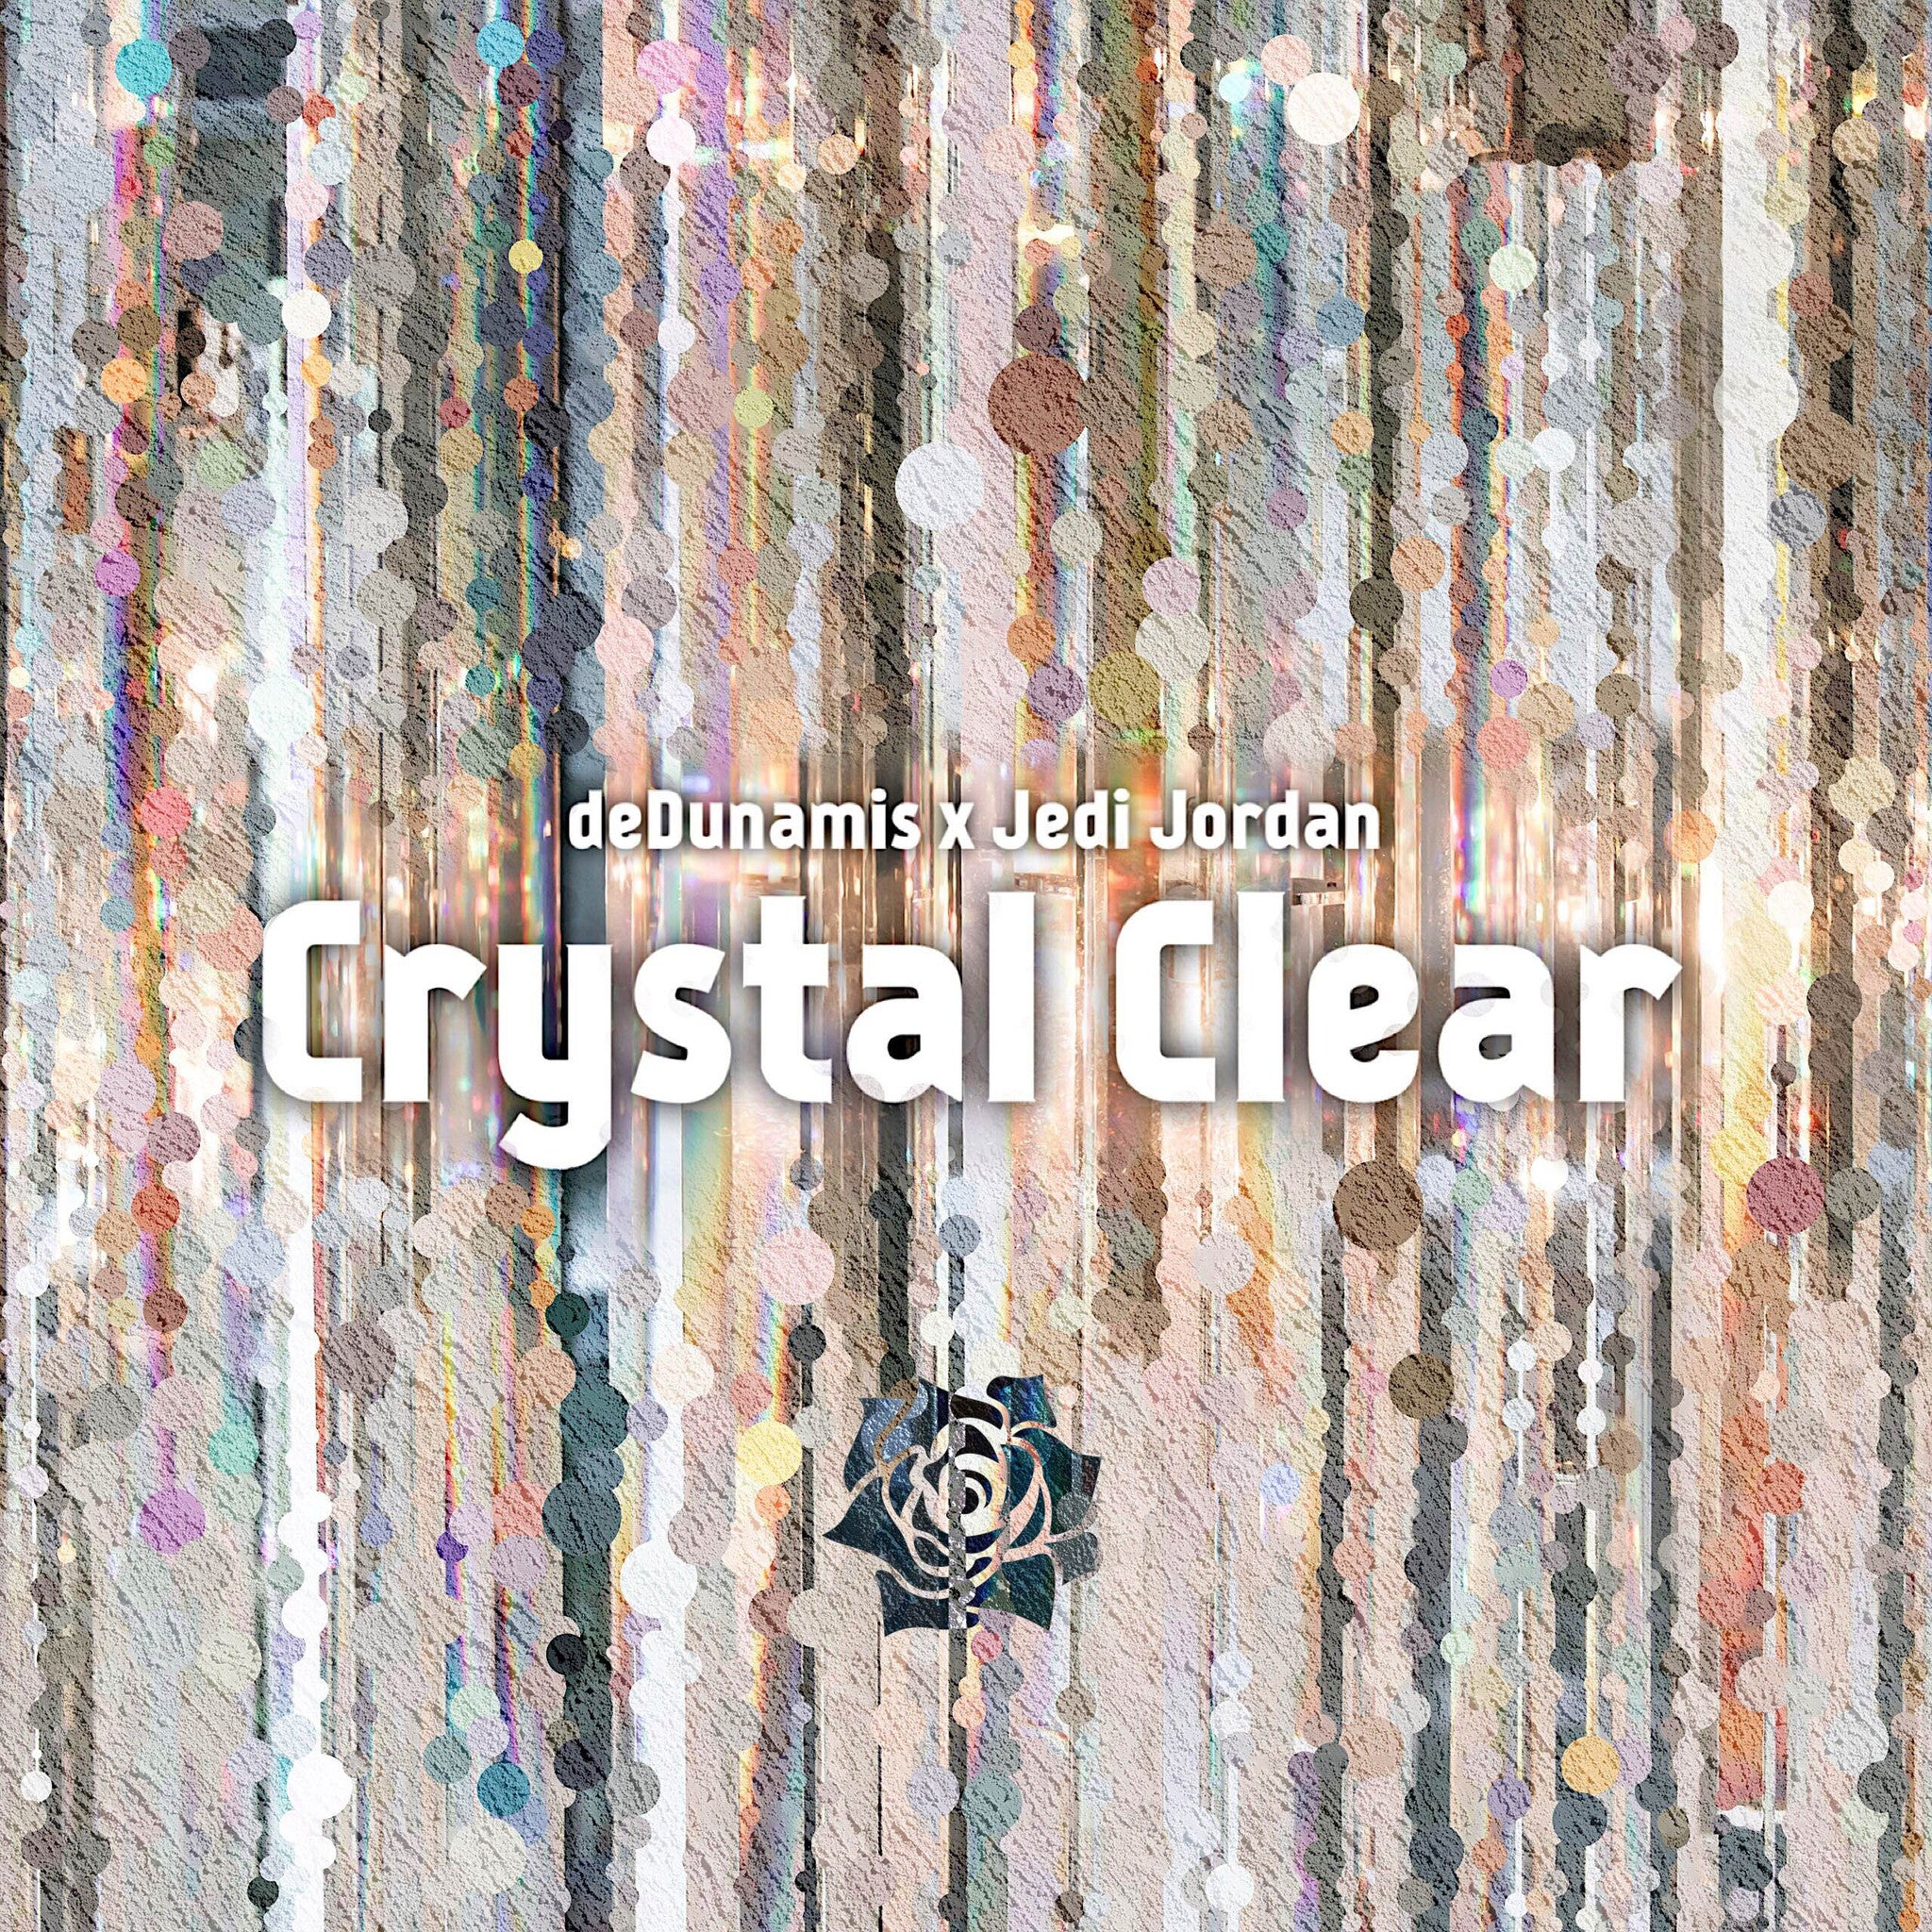 SINGLE - DeDunamis x Jedi Jordan - Crystal Clear